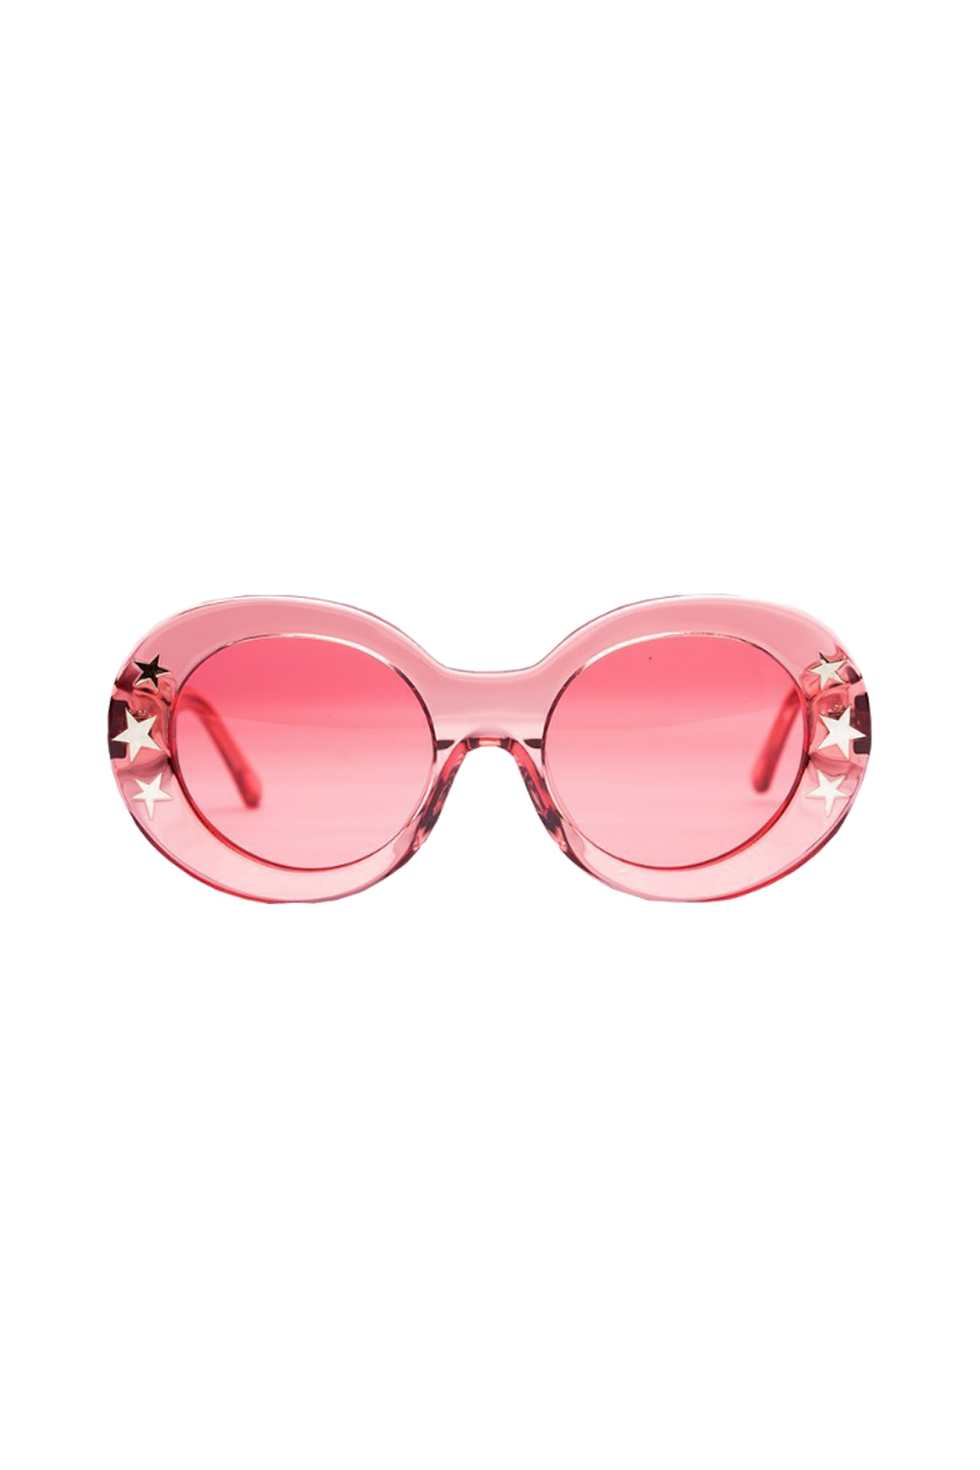 The Best Sunglasses to Buy Now and Wear All Summer Long